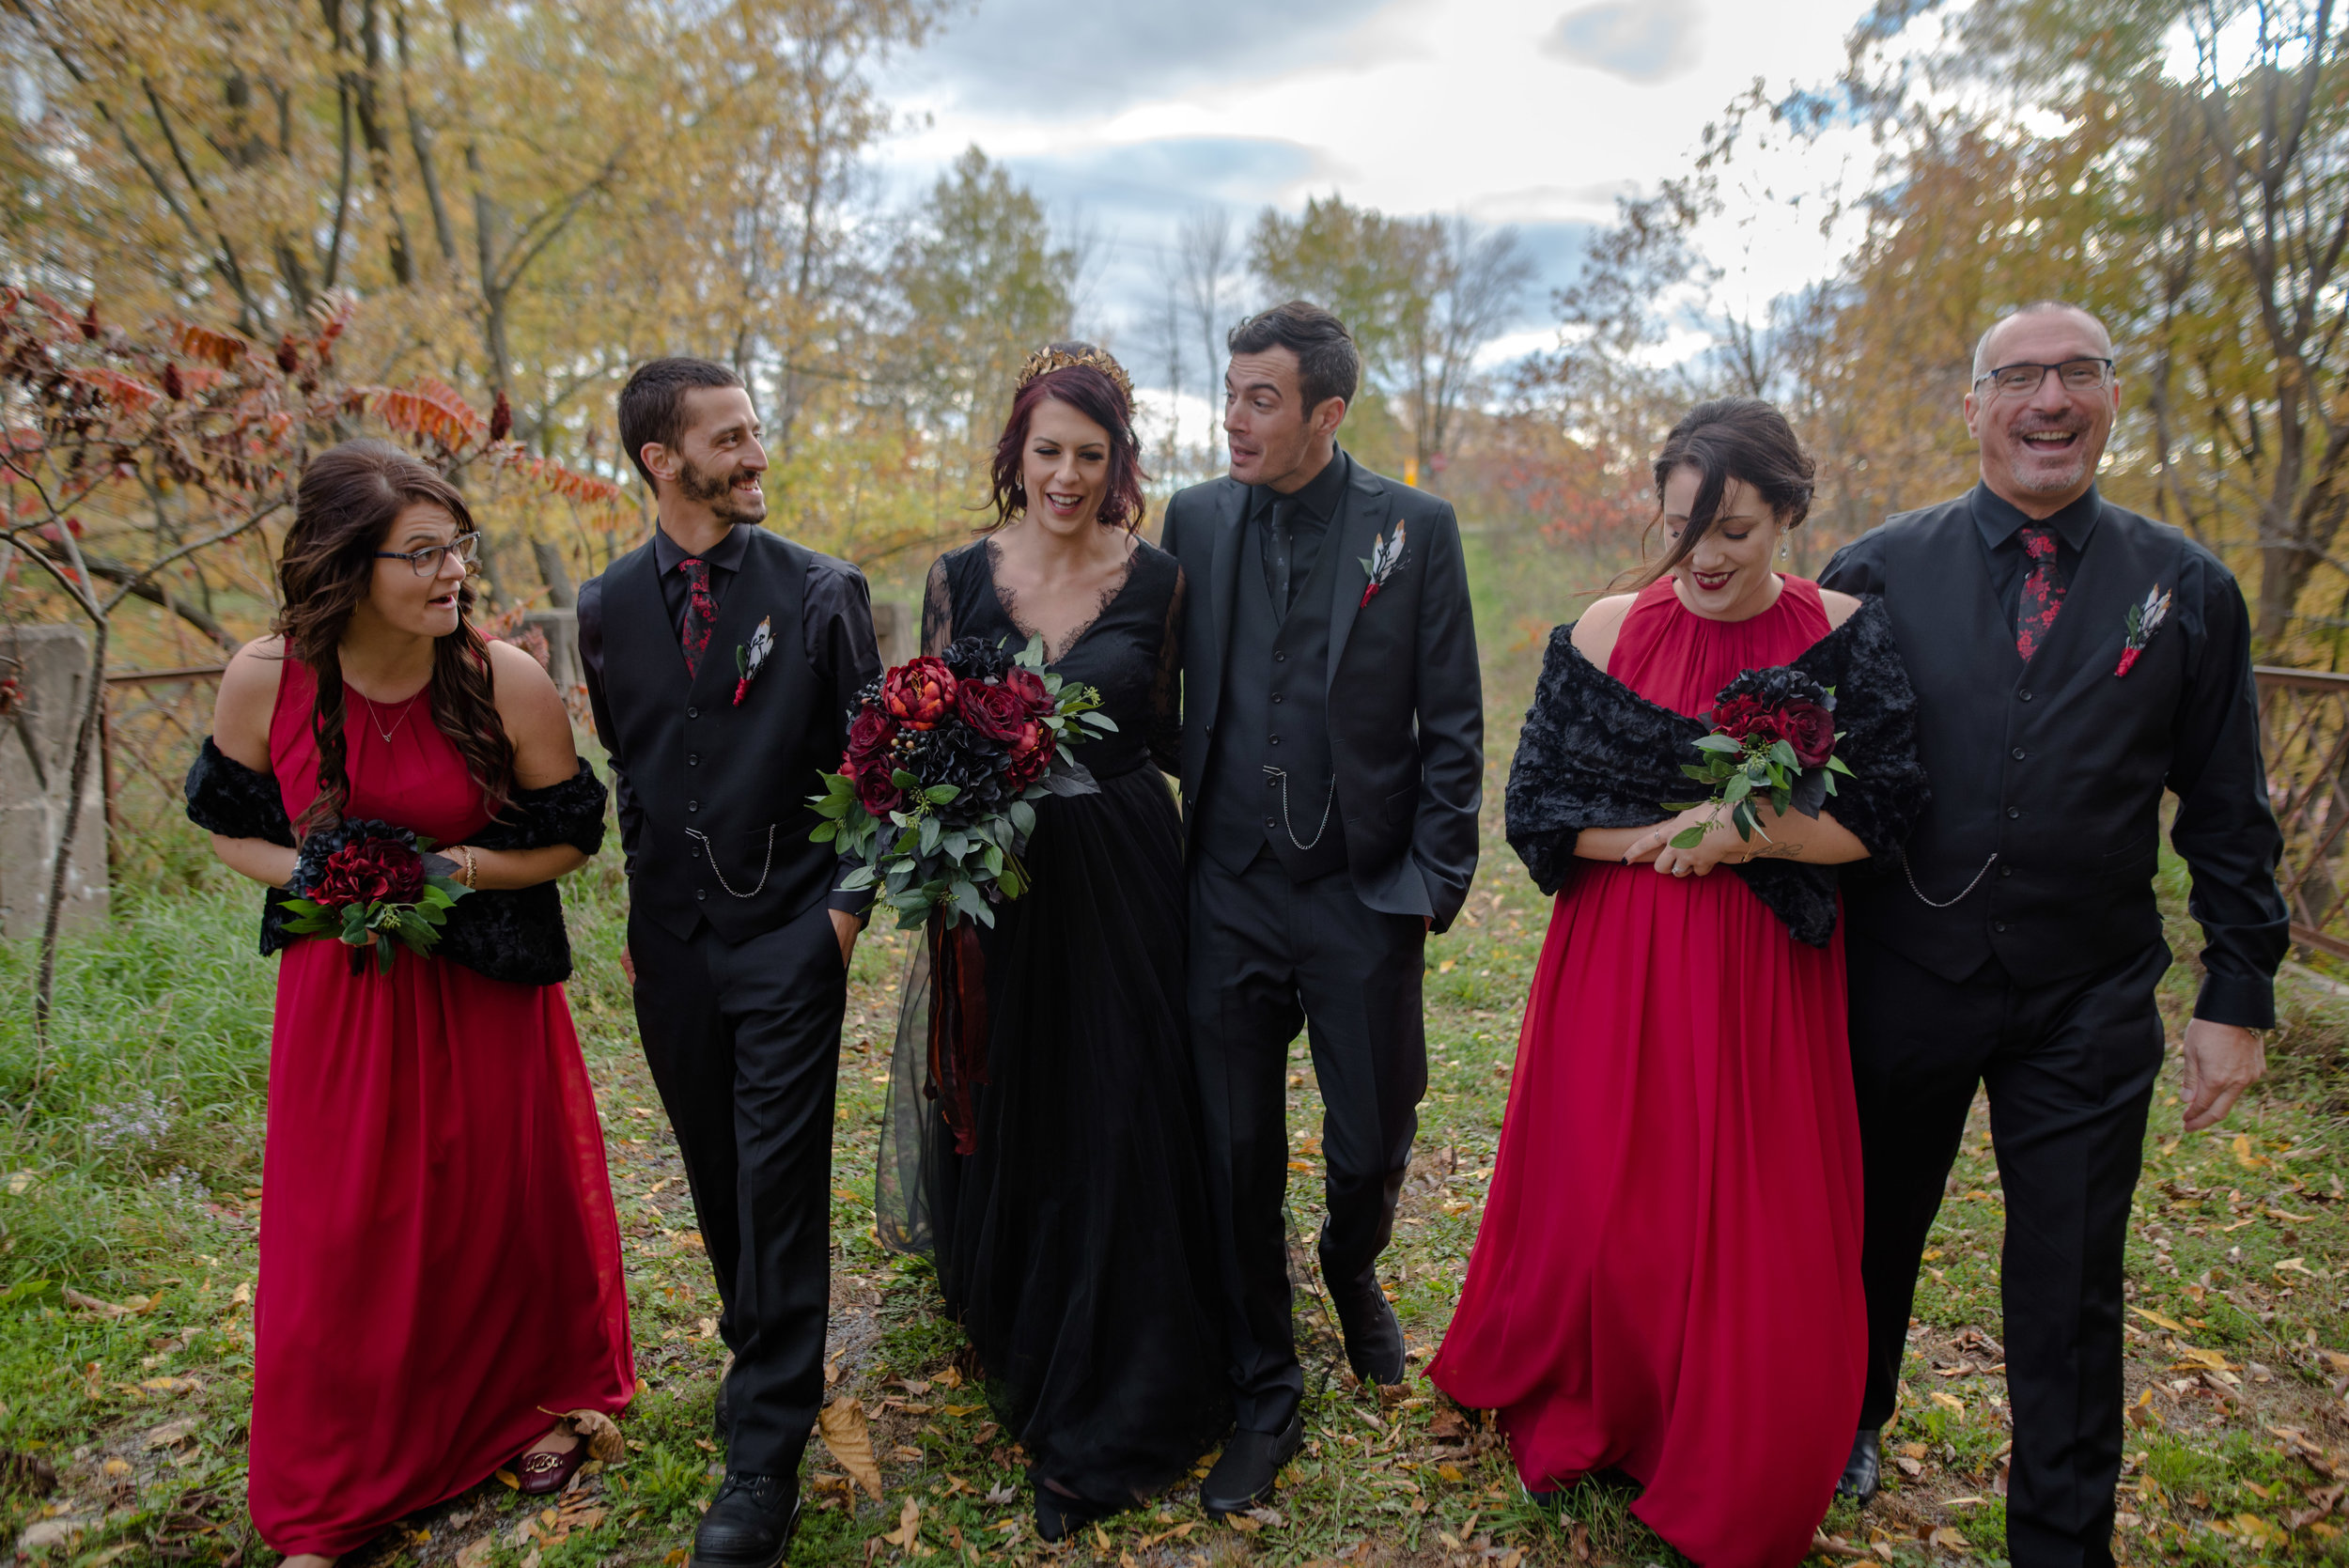 photographe_gatineau_mariage_ottawa_photographer_wedding_natasha_liard_photo_documentary_candid_lifestyle_intimate_intime (17).jpg